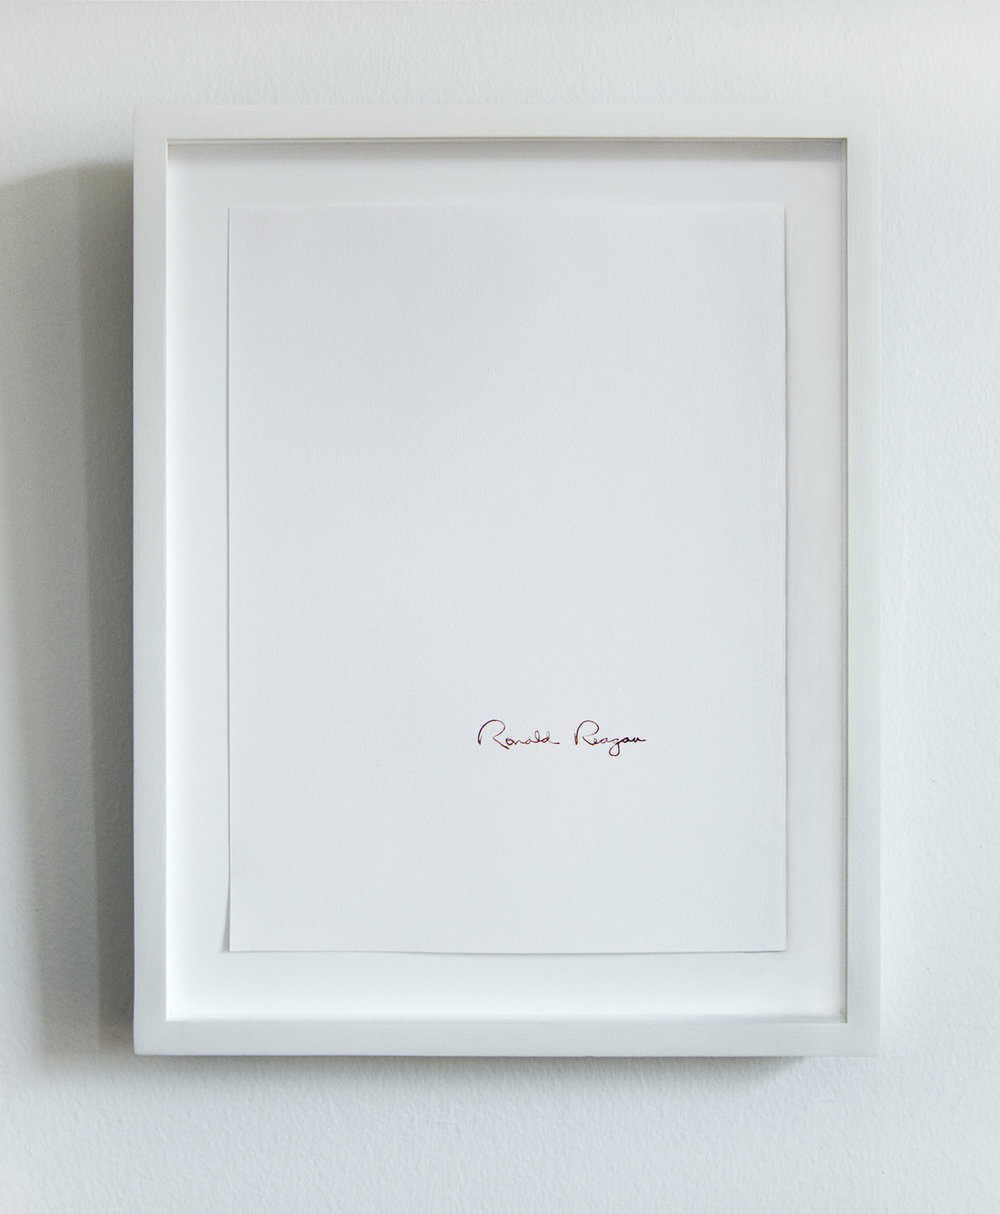 Ronald Reagan (1981-1989: AIDS, Culture Wars, Central America, etc.)   From the series  Everybody knows that they are guilty:  2013 - ongoing Human blood on paper 8.5 x 11 inches